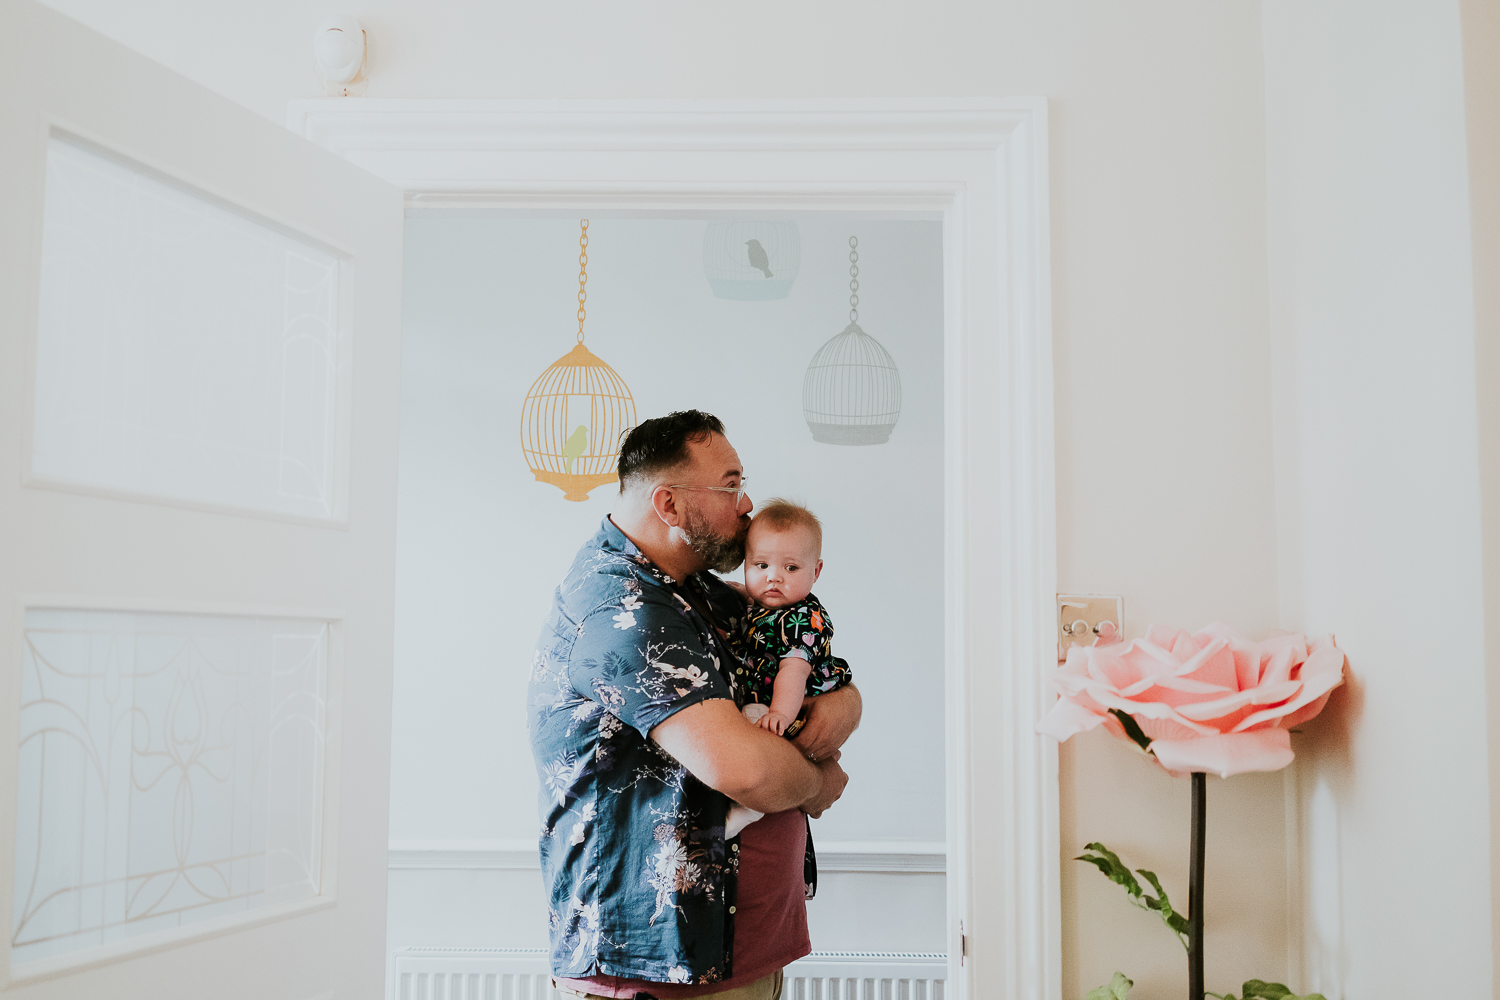 day in the life photo shoot father holding baby daughter in hallway kissing her on the head